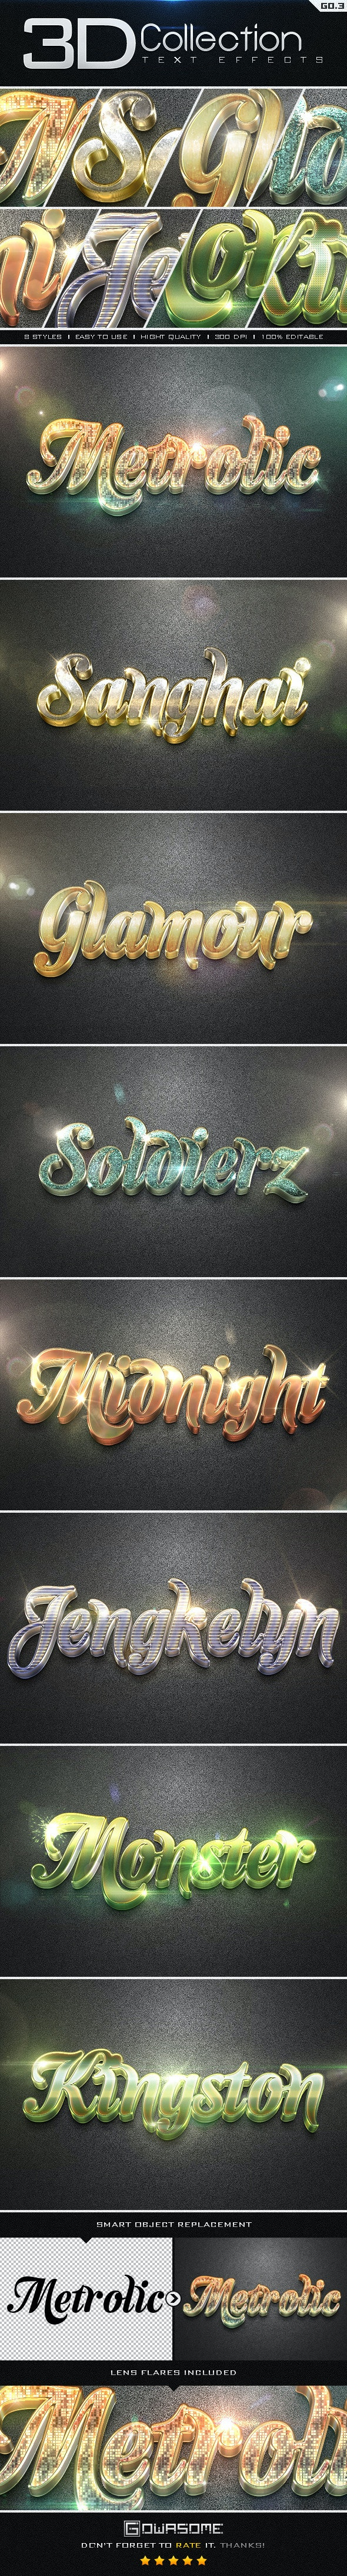 3D Collection Text Effects GO.3 - Text Effects Styles